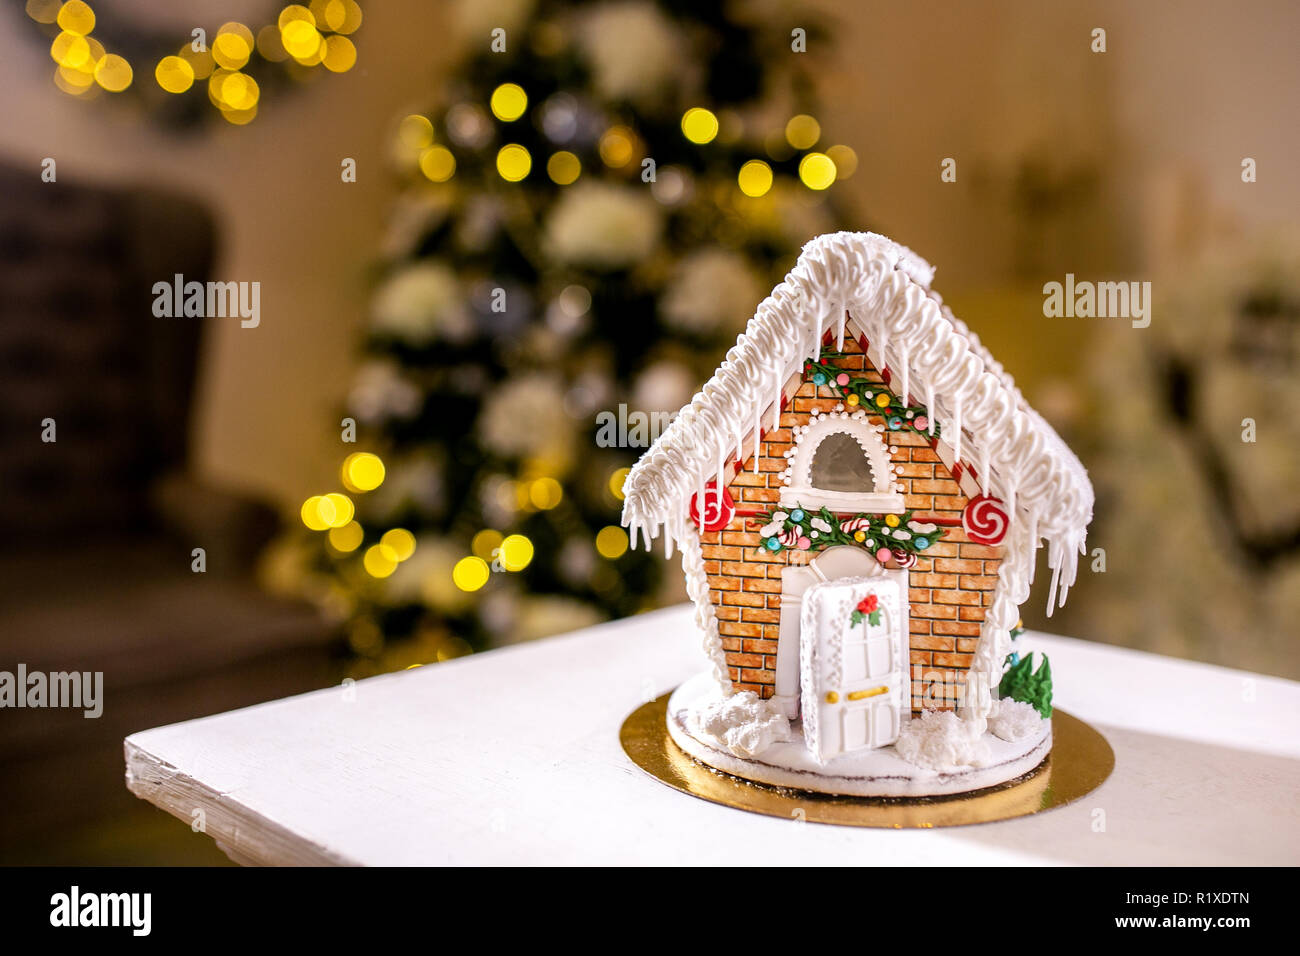 Gingerbread House In Front Of Defocused Lights Of Christmas